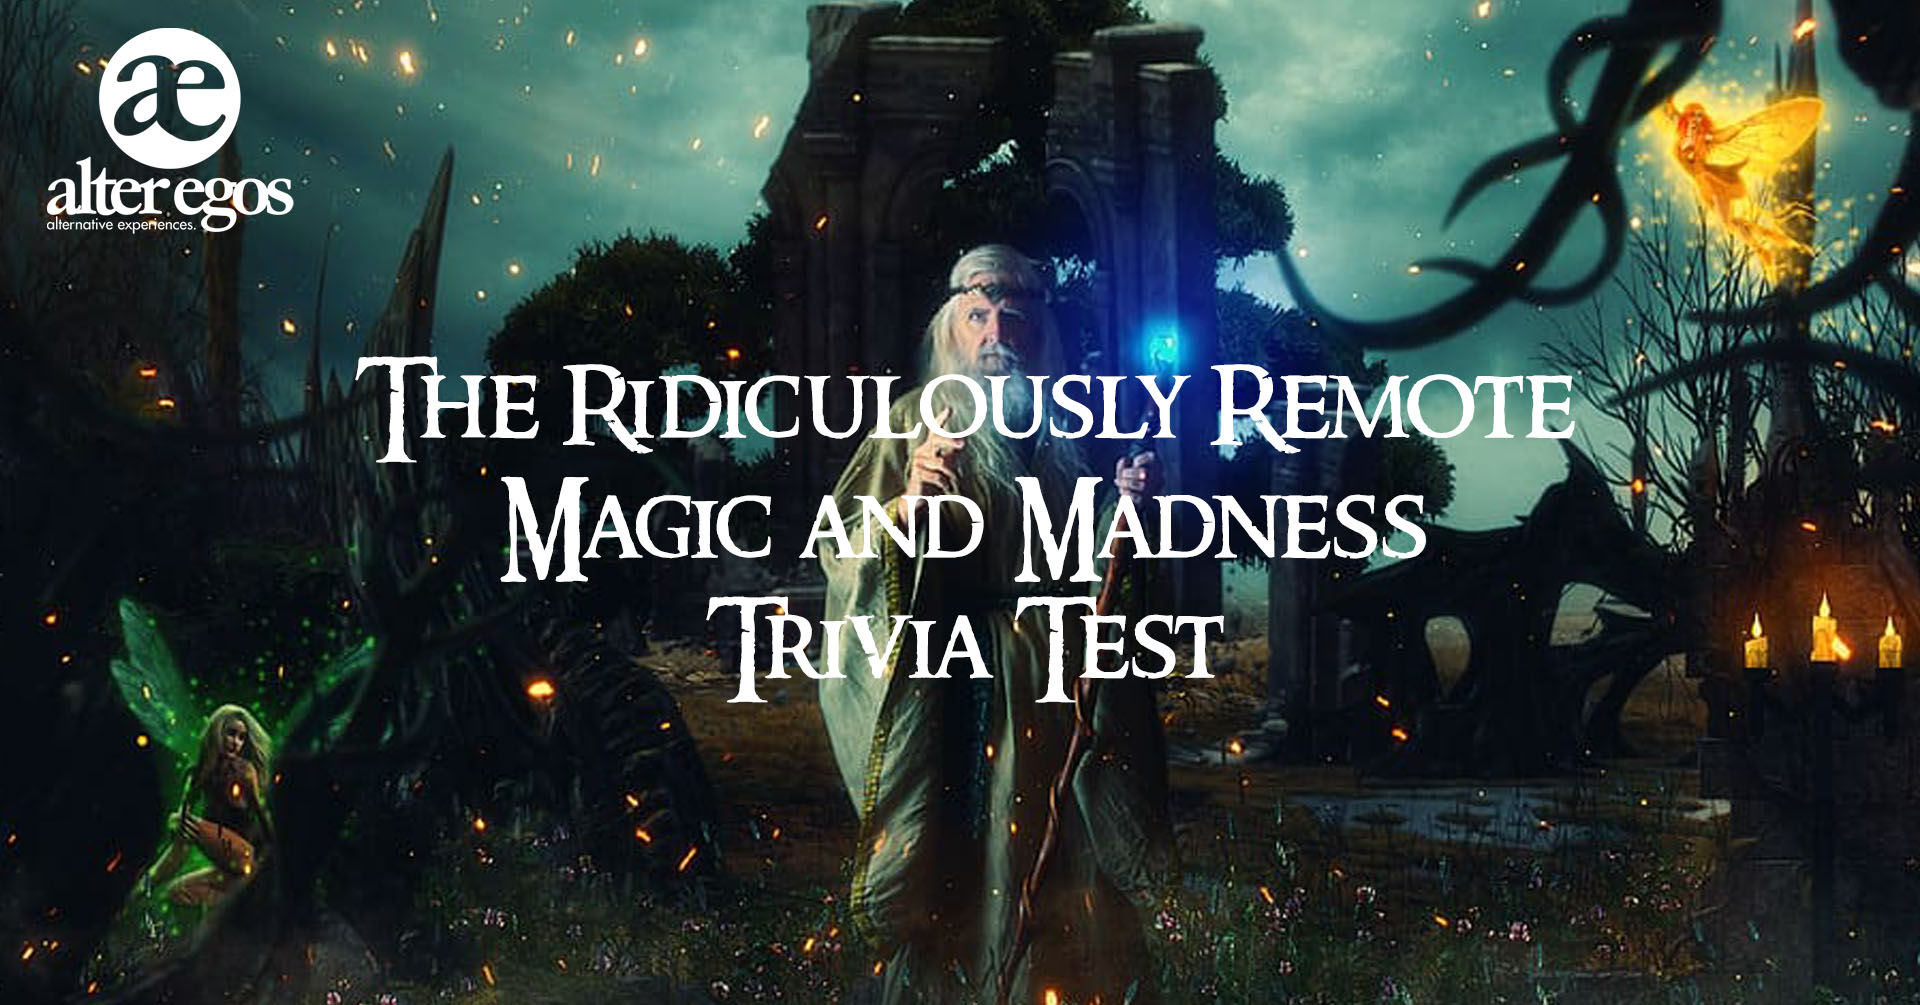 The Ridiculously Remote Magic & Madness Trivia Test